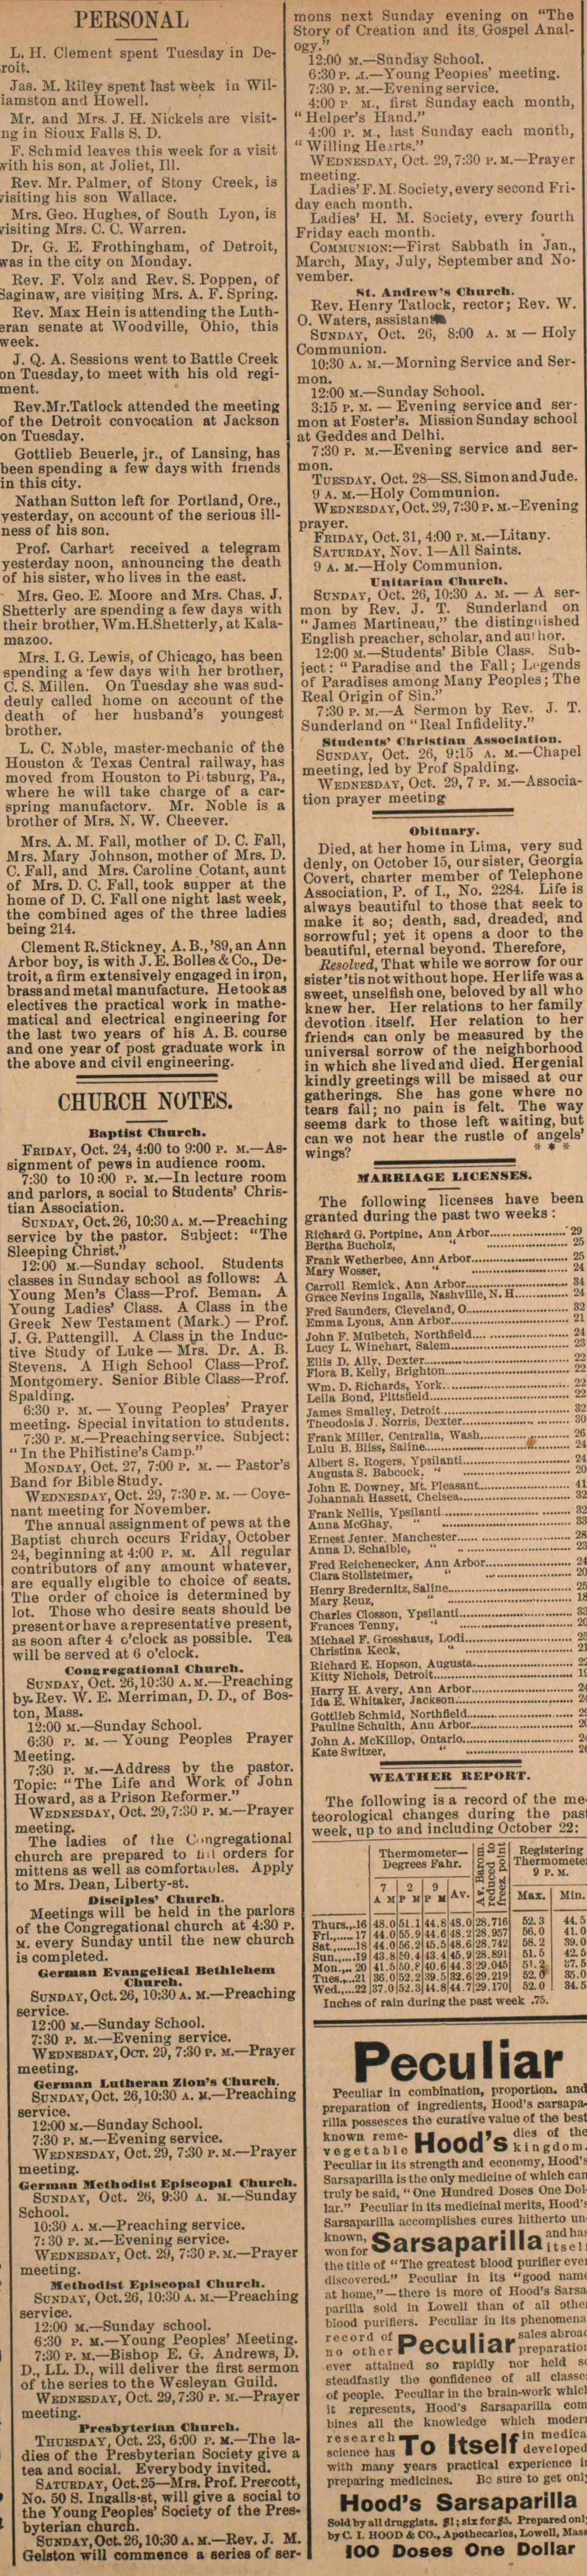 Church Notes image